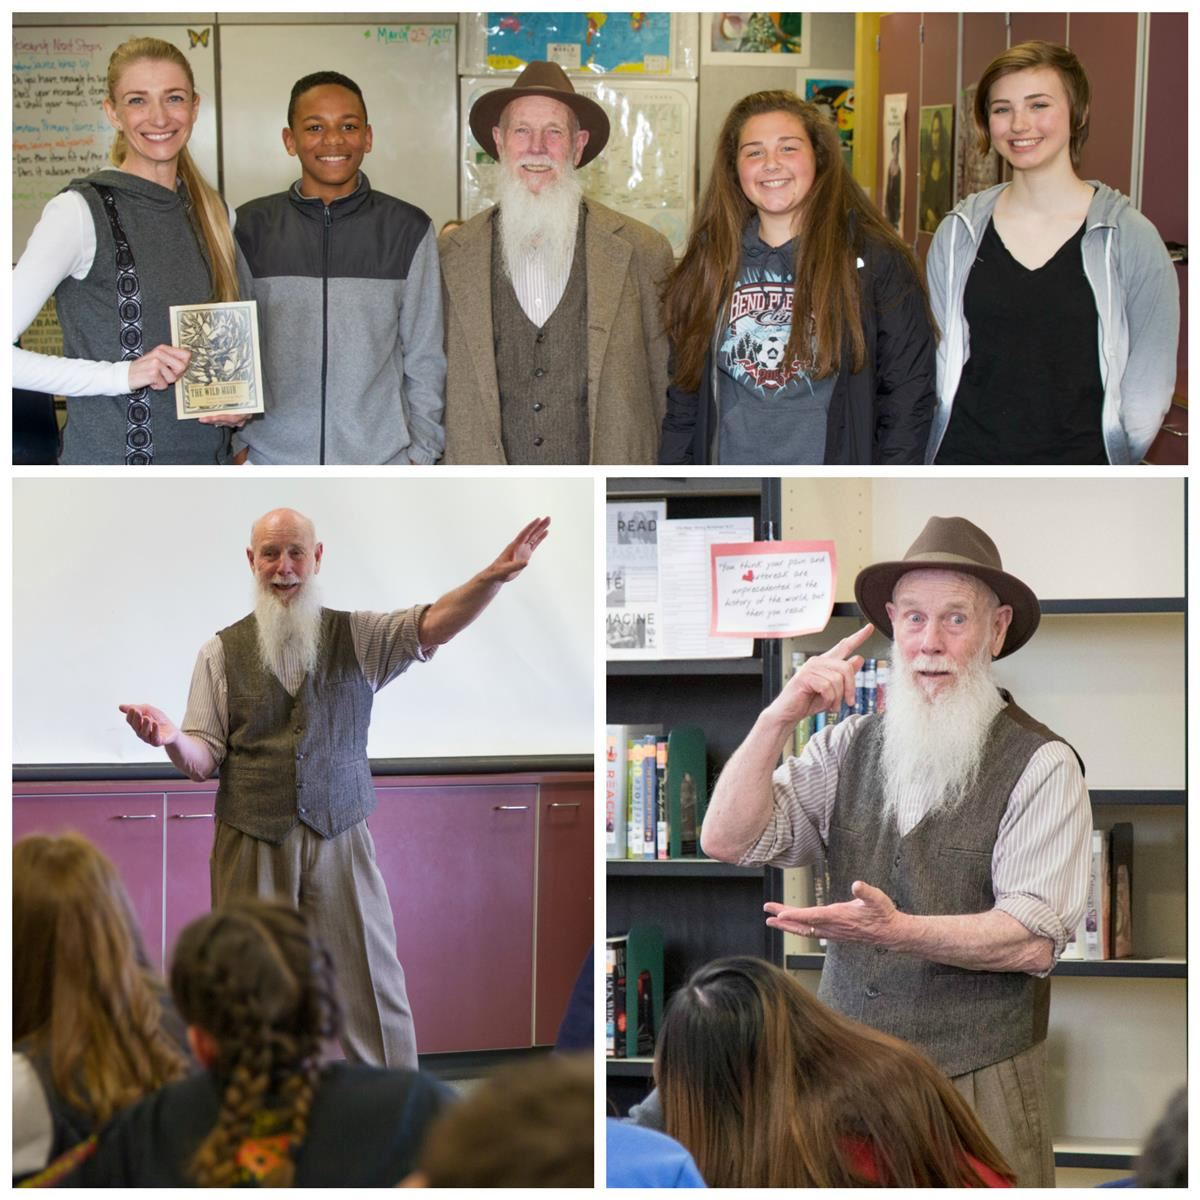 John Muir impersonator Lee Stetson performs for students at Frontier Middle School